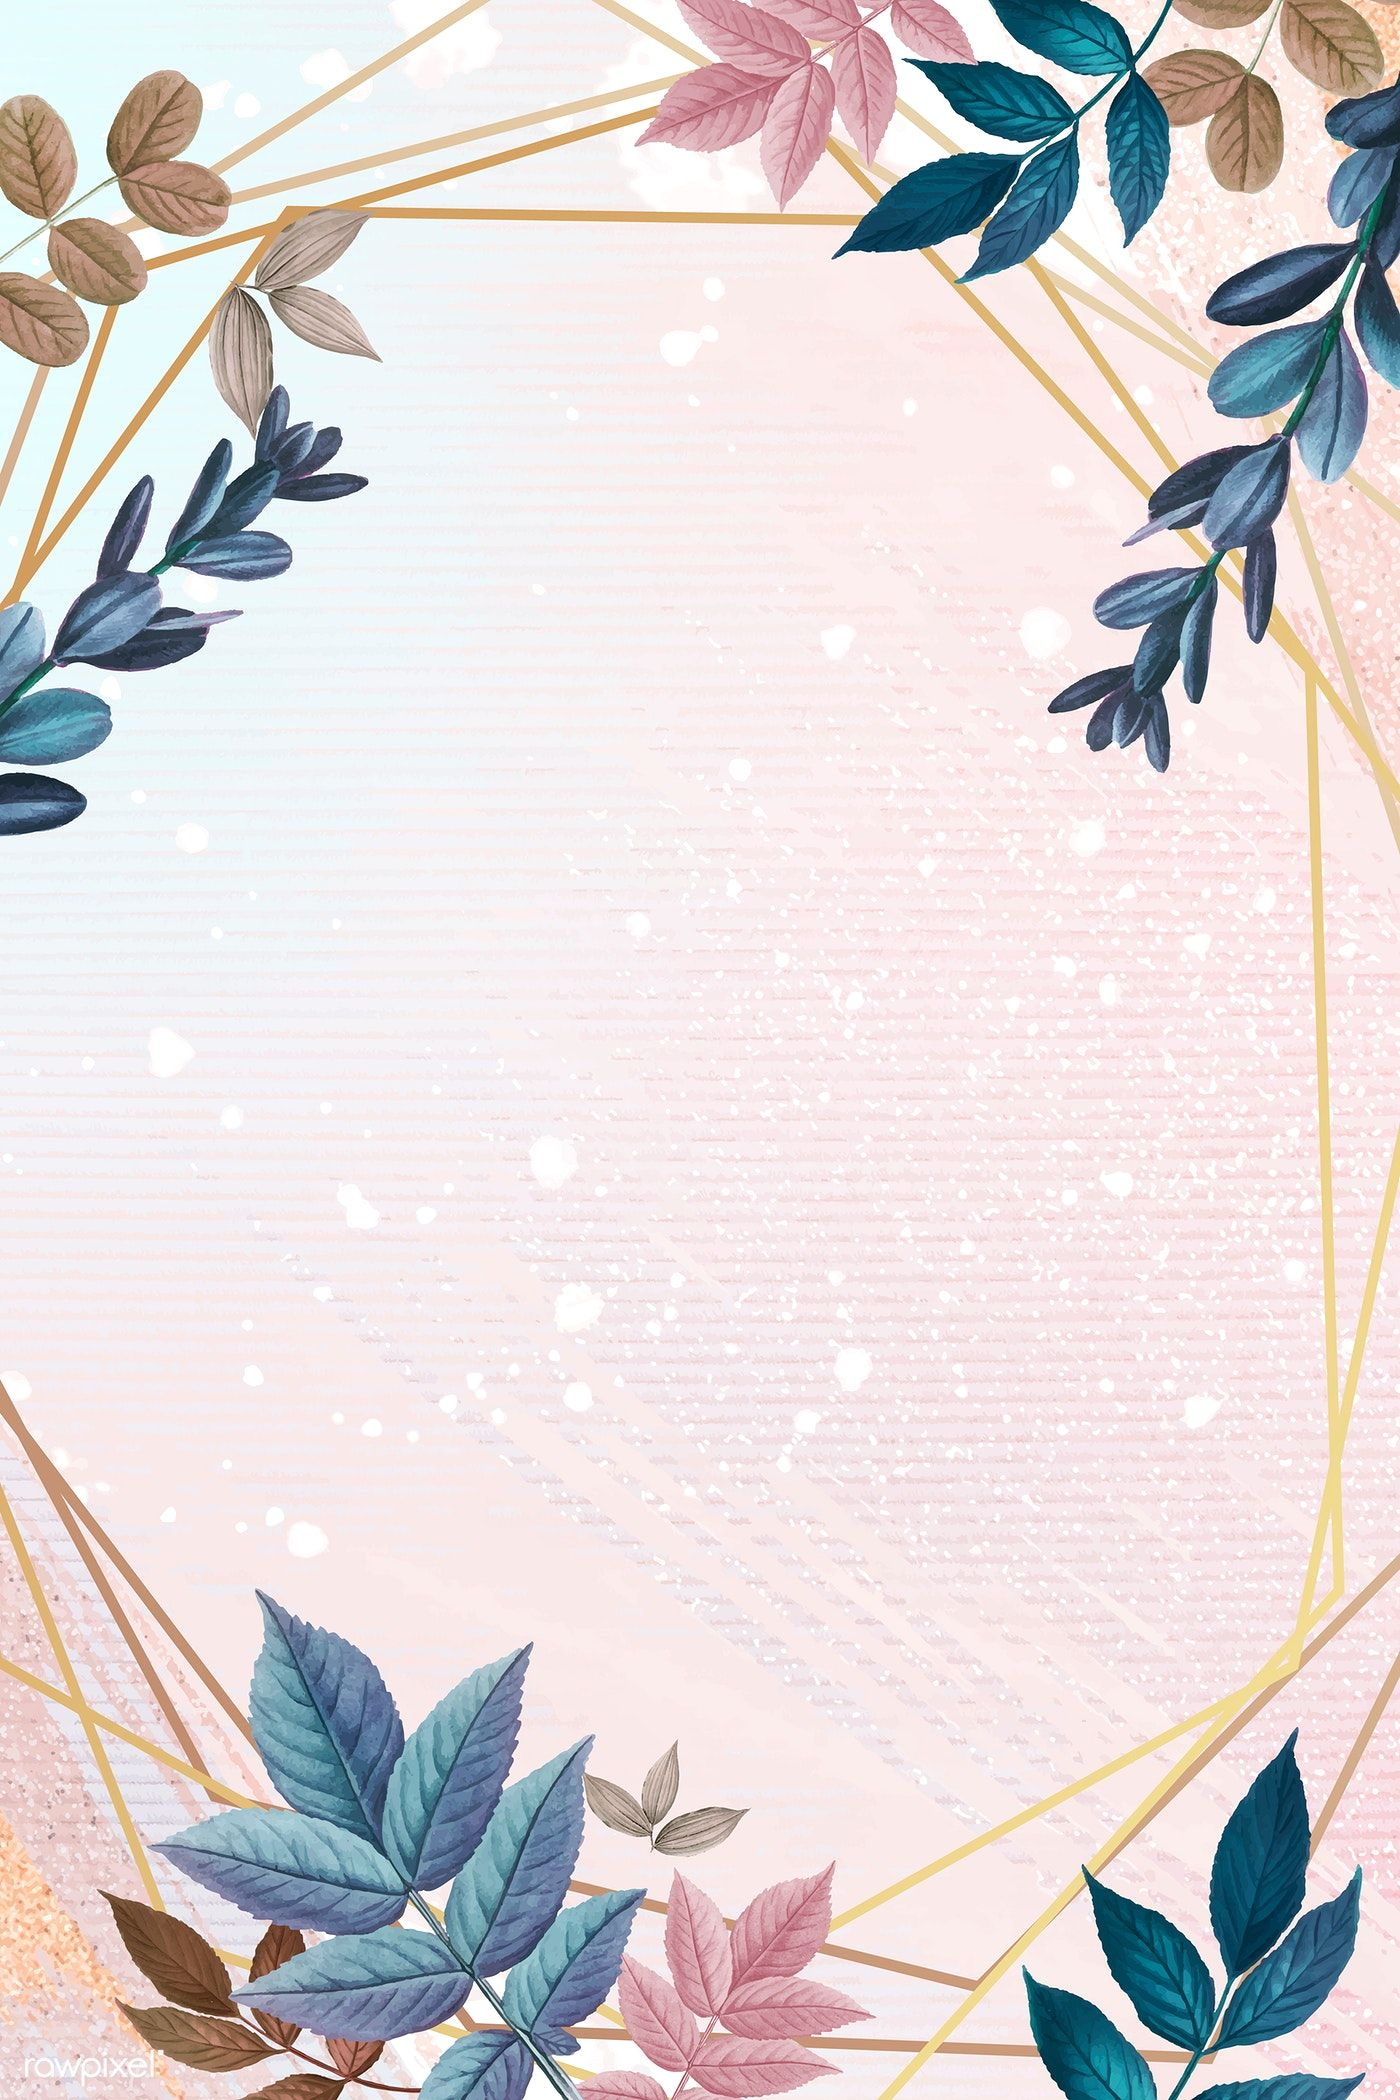 Download Premium Vector Of Blank Golden Heptagon Frame Decorated With Flower Background Wallpaper Flower Backgrounds Floral Poster